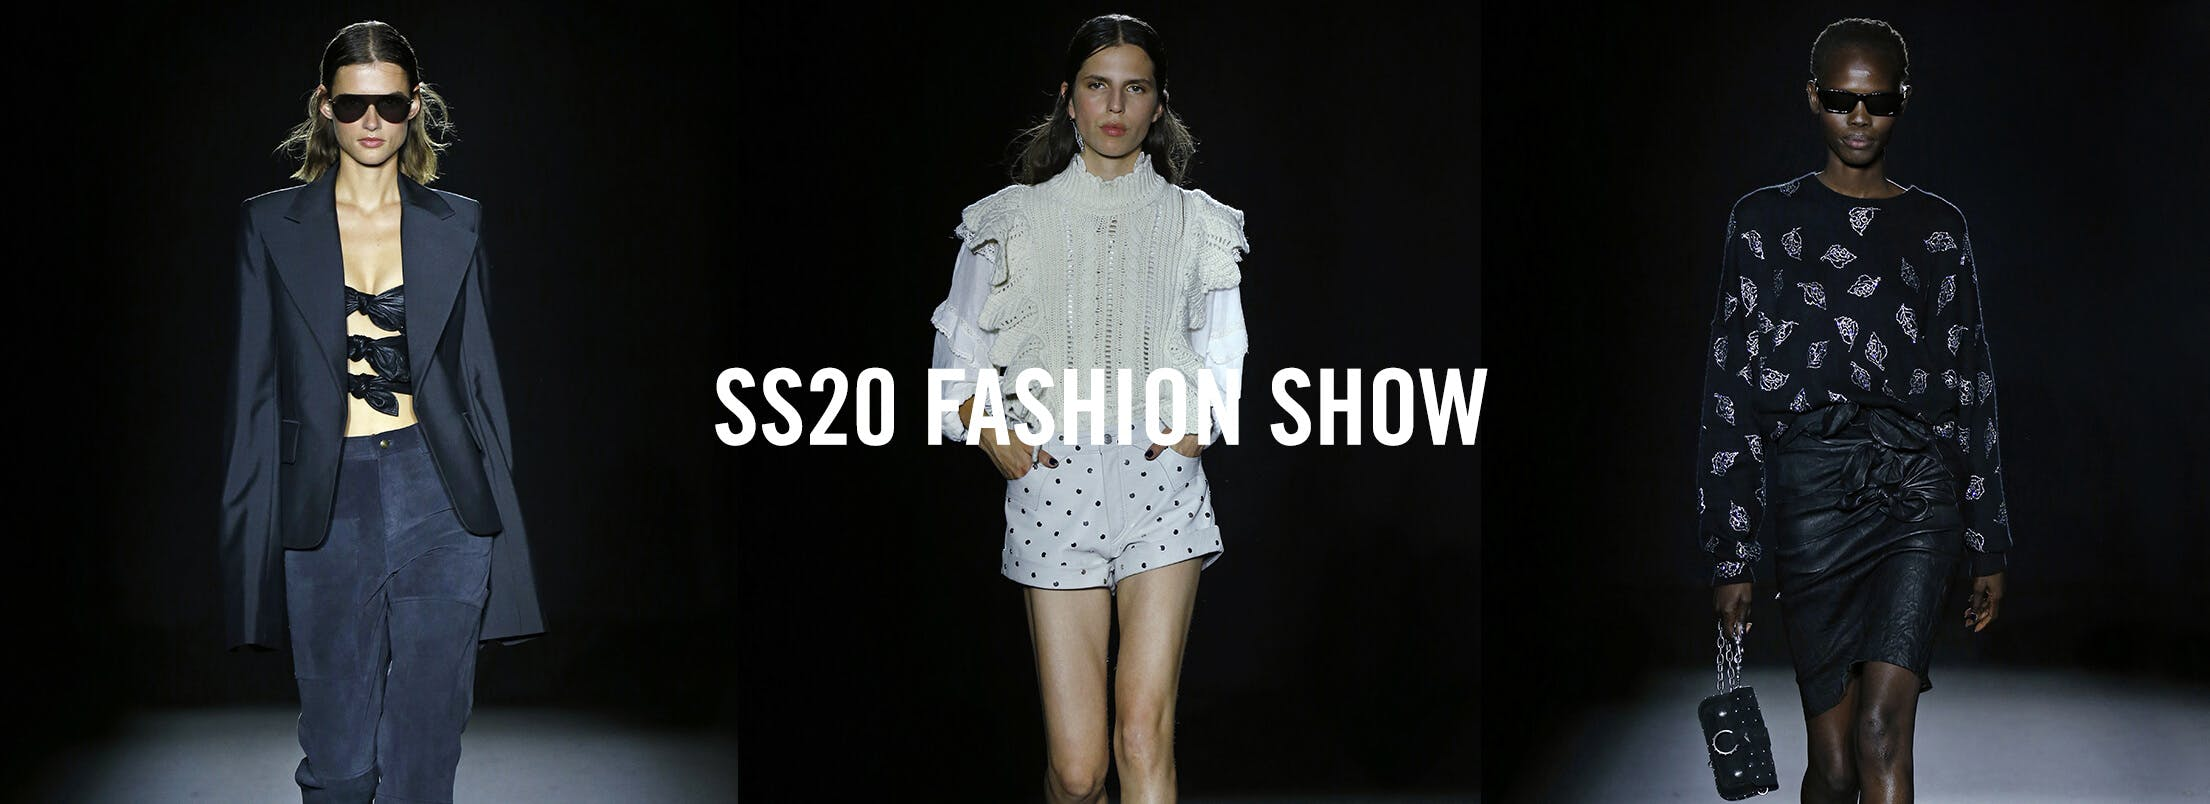 Spring/Summer 2020 Fashion Show